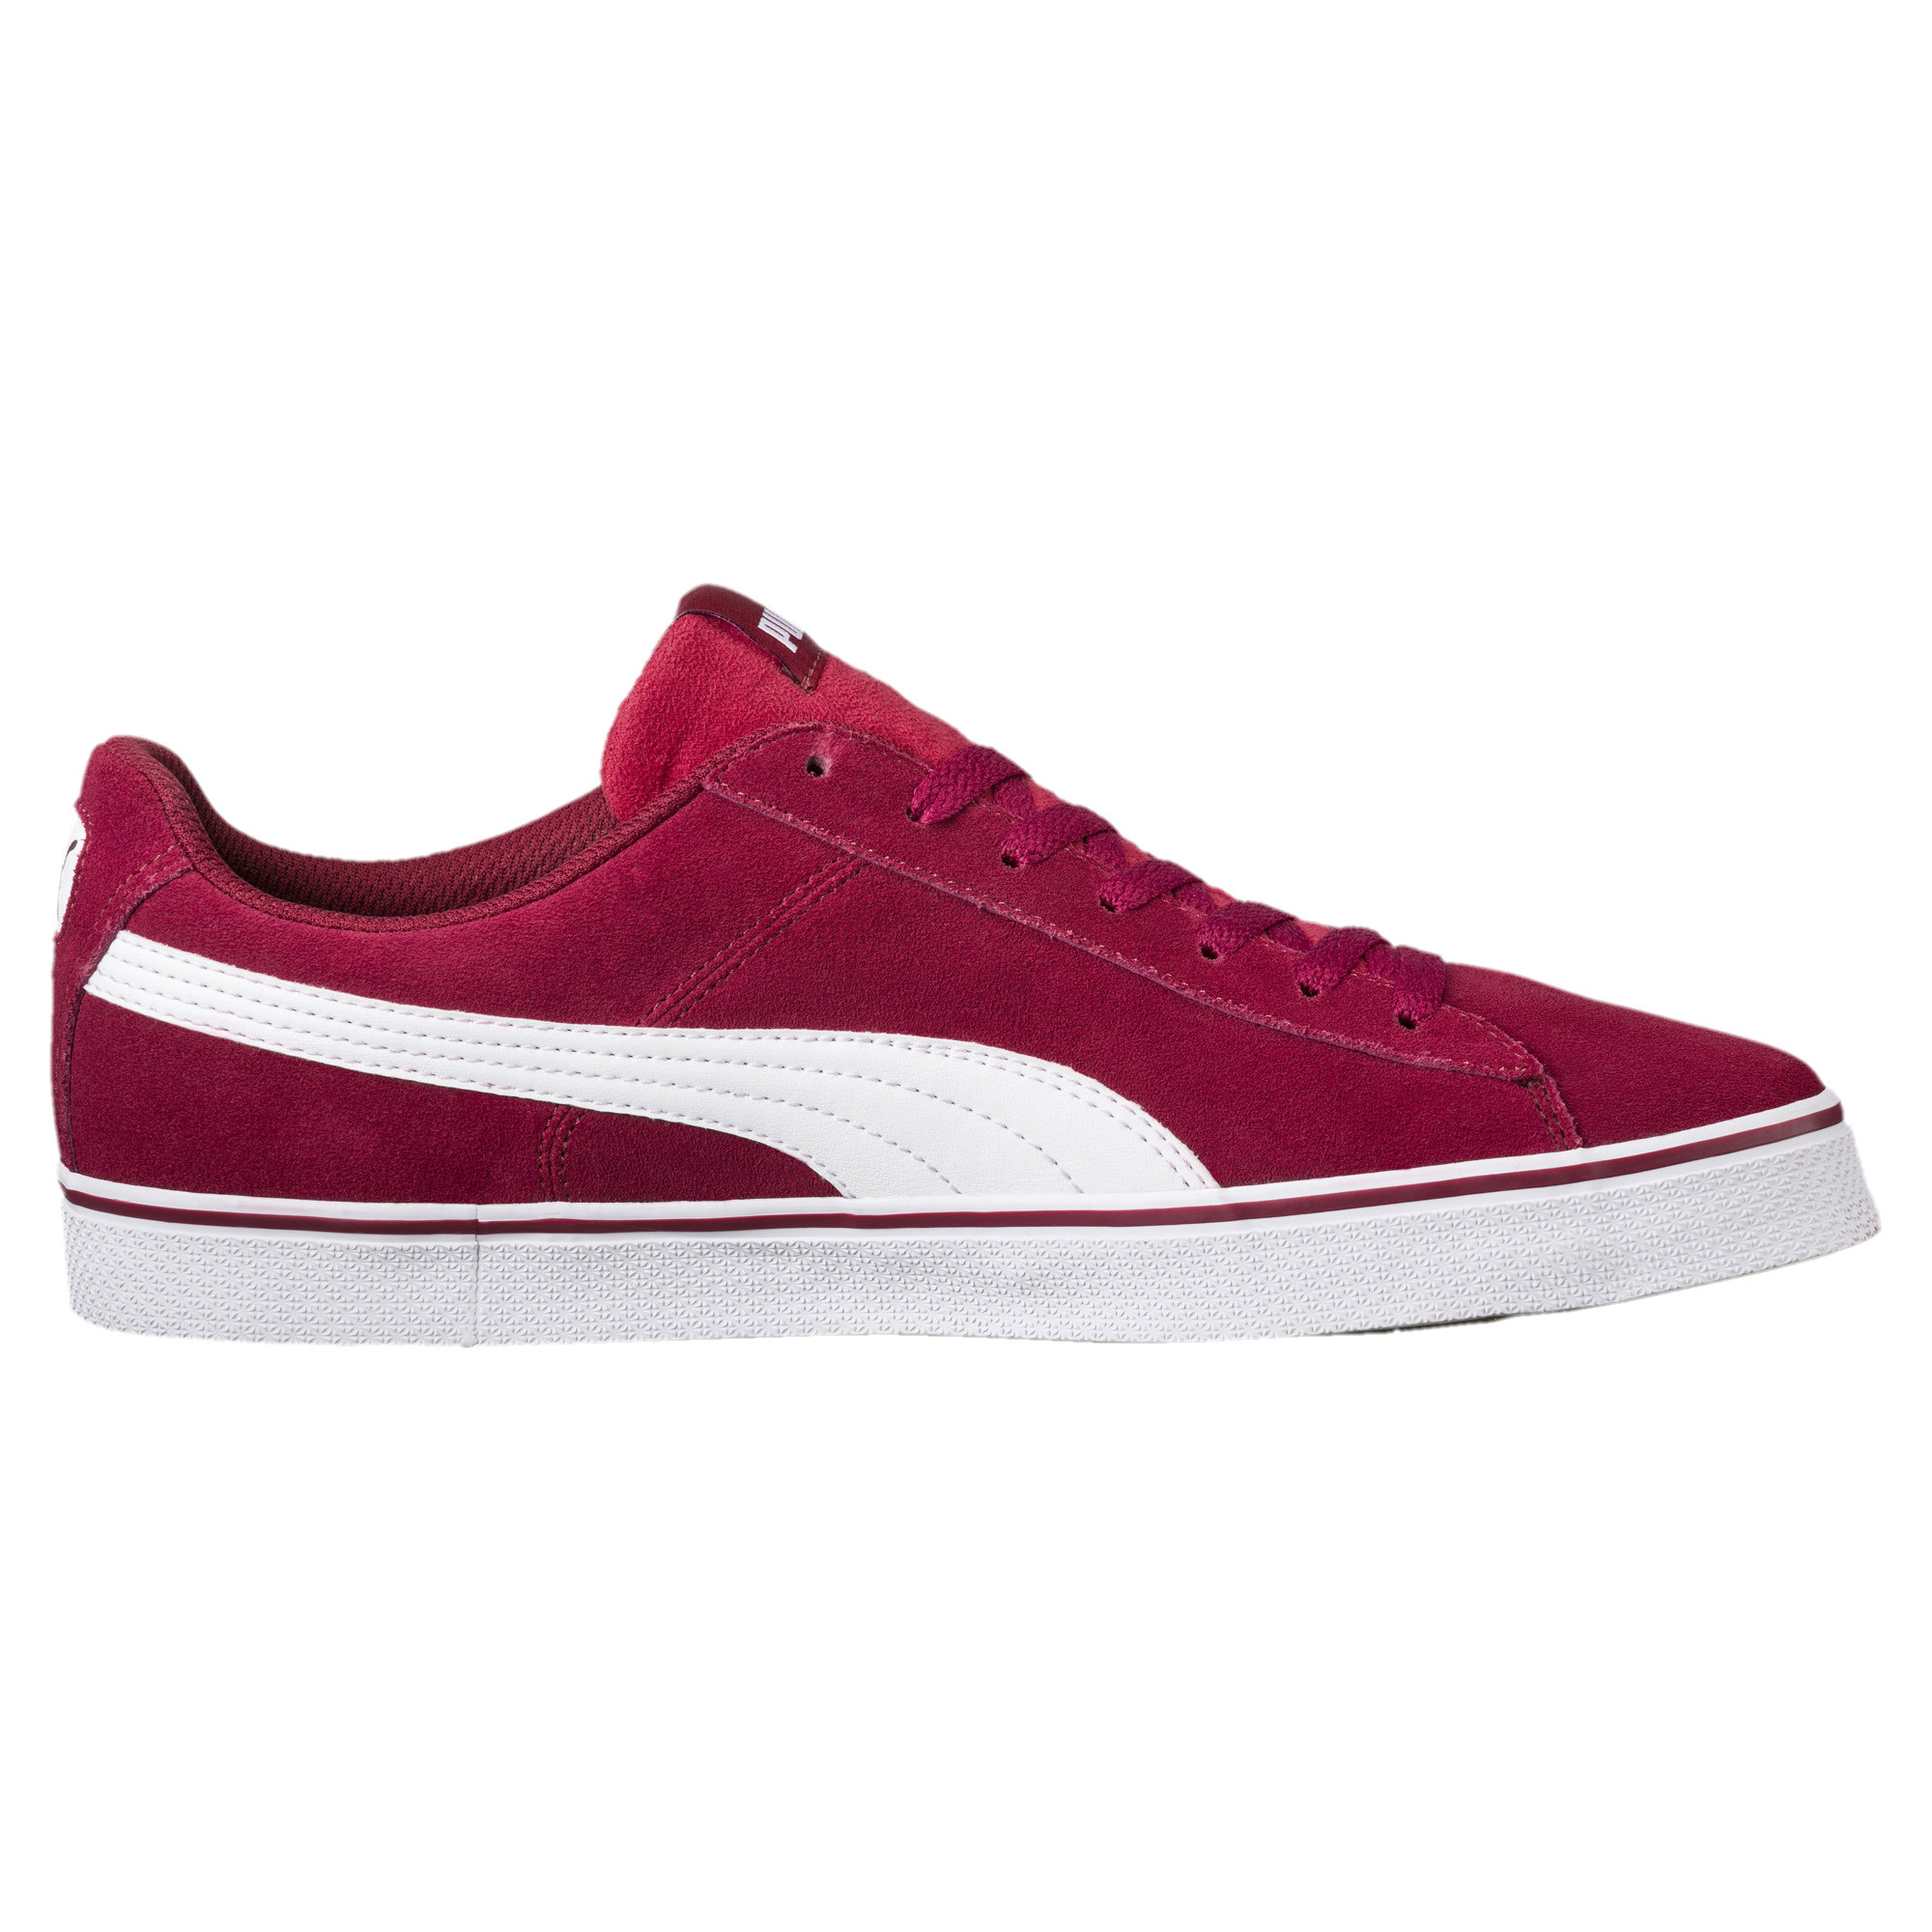 PUMA-Puma-1948-Vulc-Men-s-Sneakers-Men-Shoe-Basics thumbnail 5